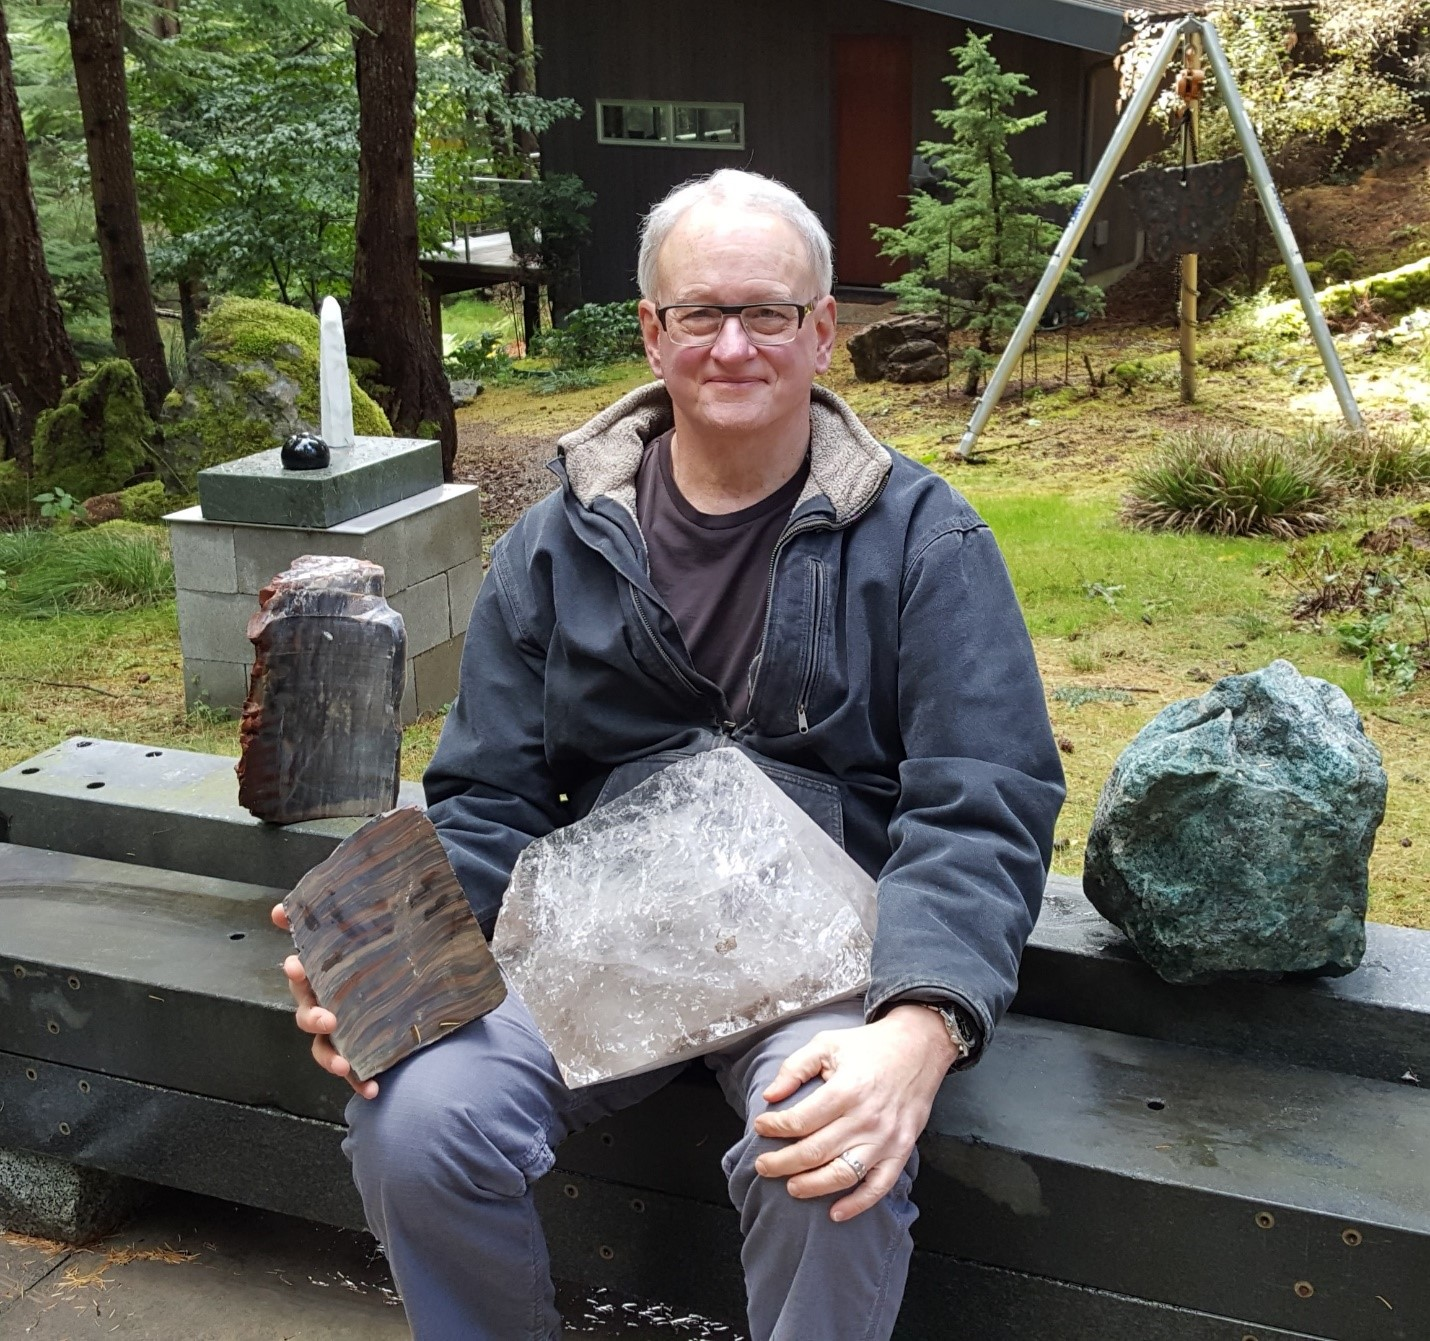 Michael Yeaman holding some treasures